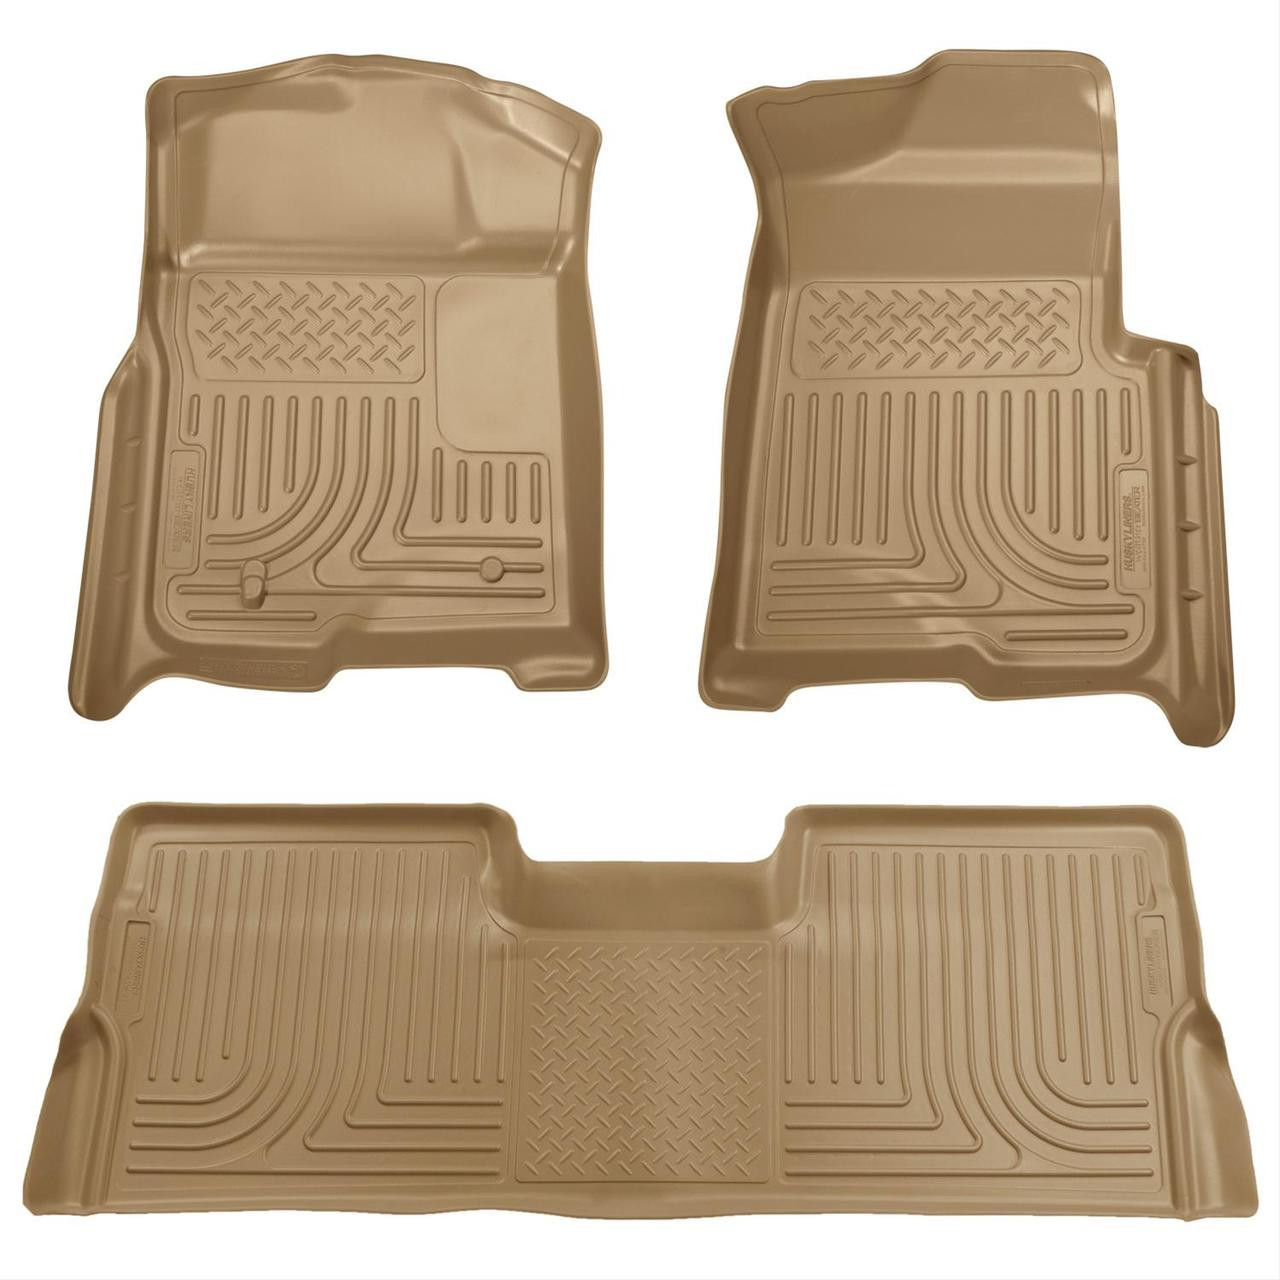 08-10 FORD SD CREW CAB W/O MANUAL 4X4 TRANSFER CASE WEATHERBEATER FRONT & 2ND SEAT FLR LNR 3PC TAN